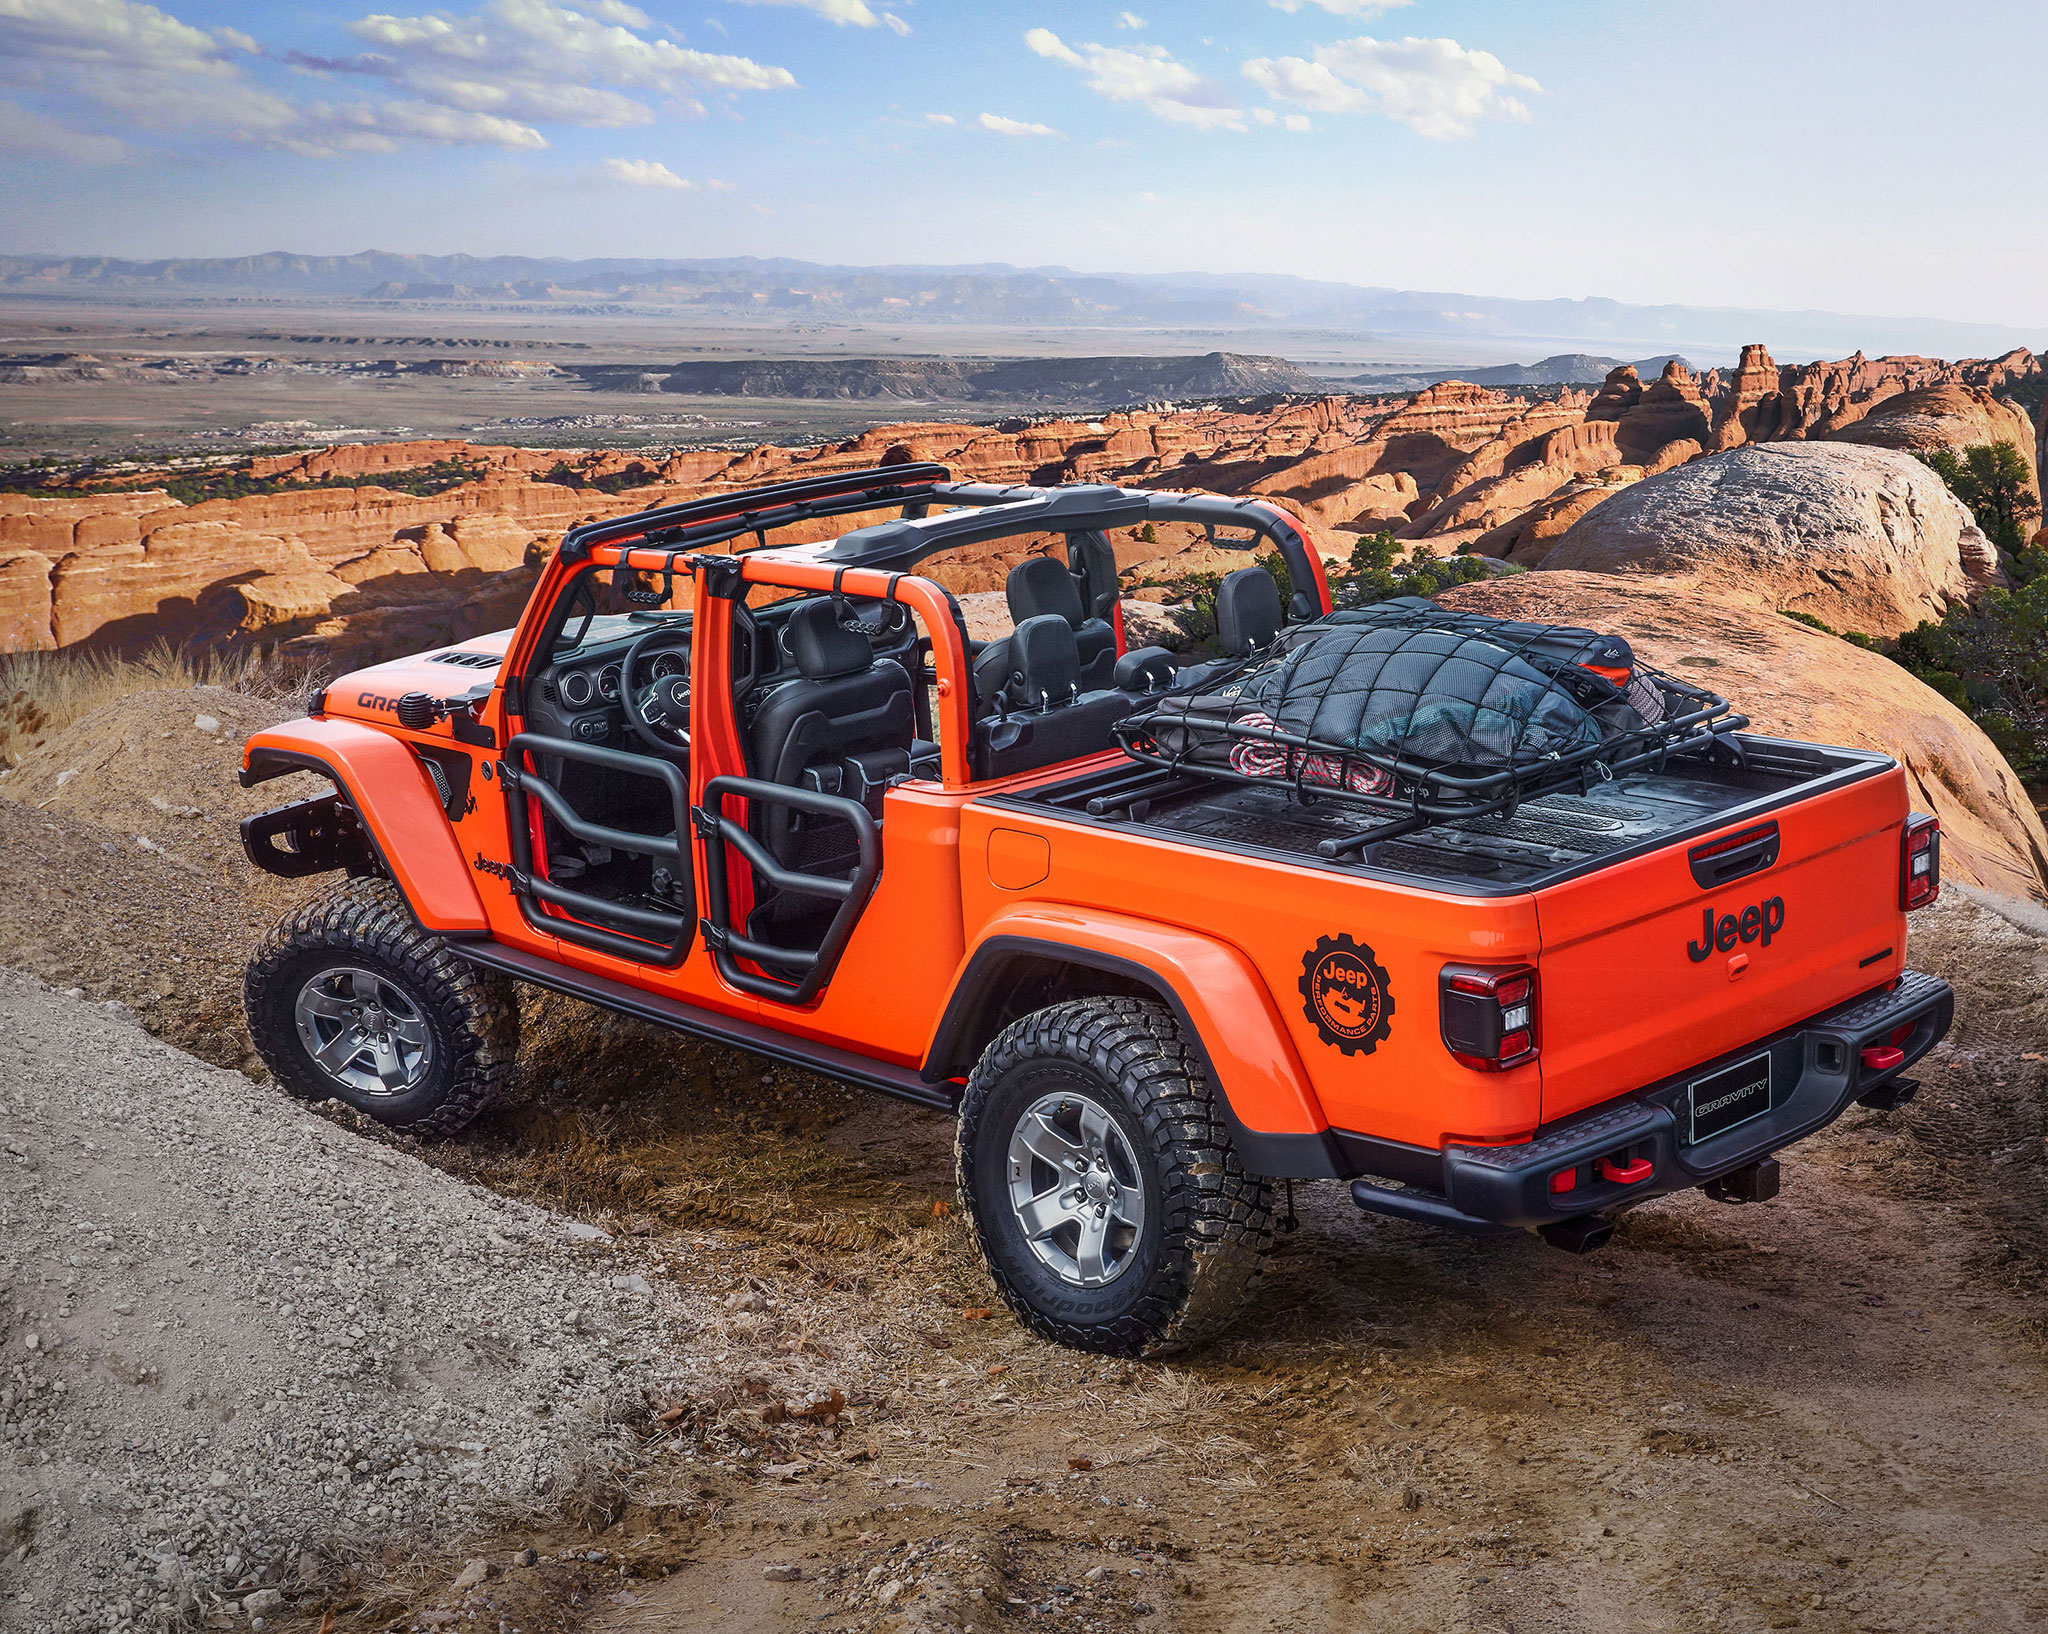 2019 Jeep Gladiator Gravity jantes de 17 pouces et pneus en 35 - Moab Easter Jeep Safari.